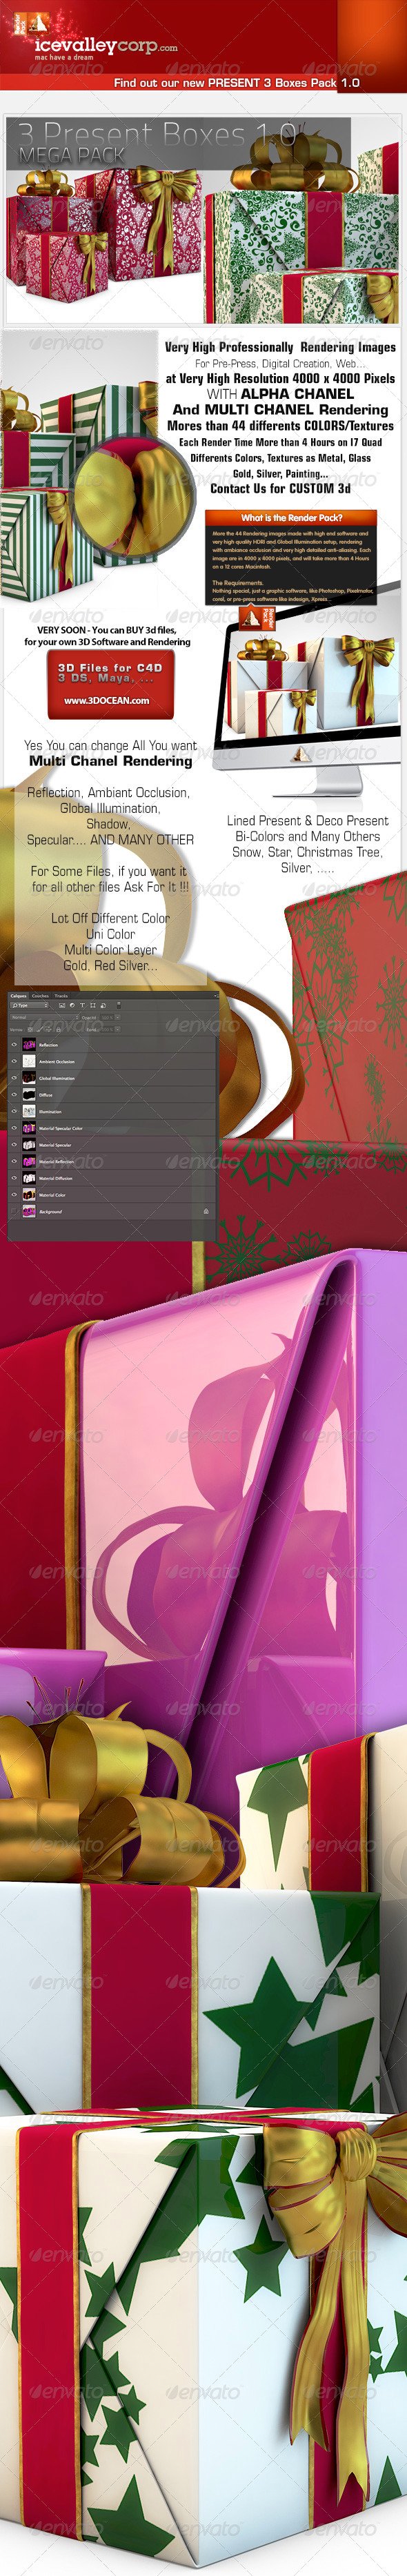 3 Present Pack Present Boxes in Hires - Objects 3D Renders